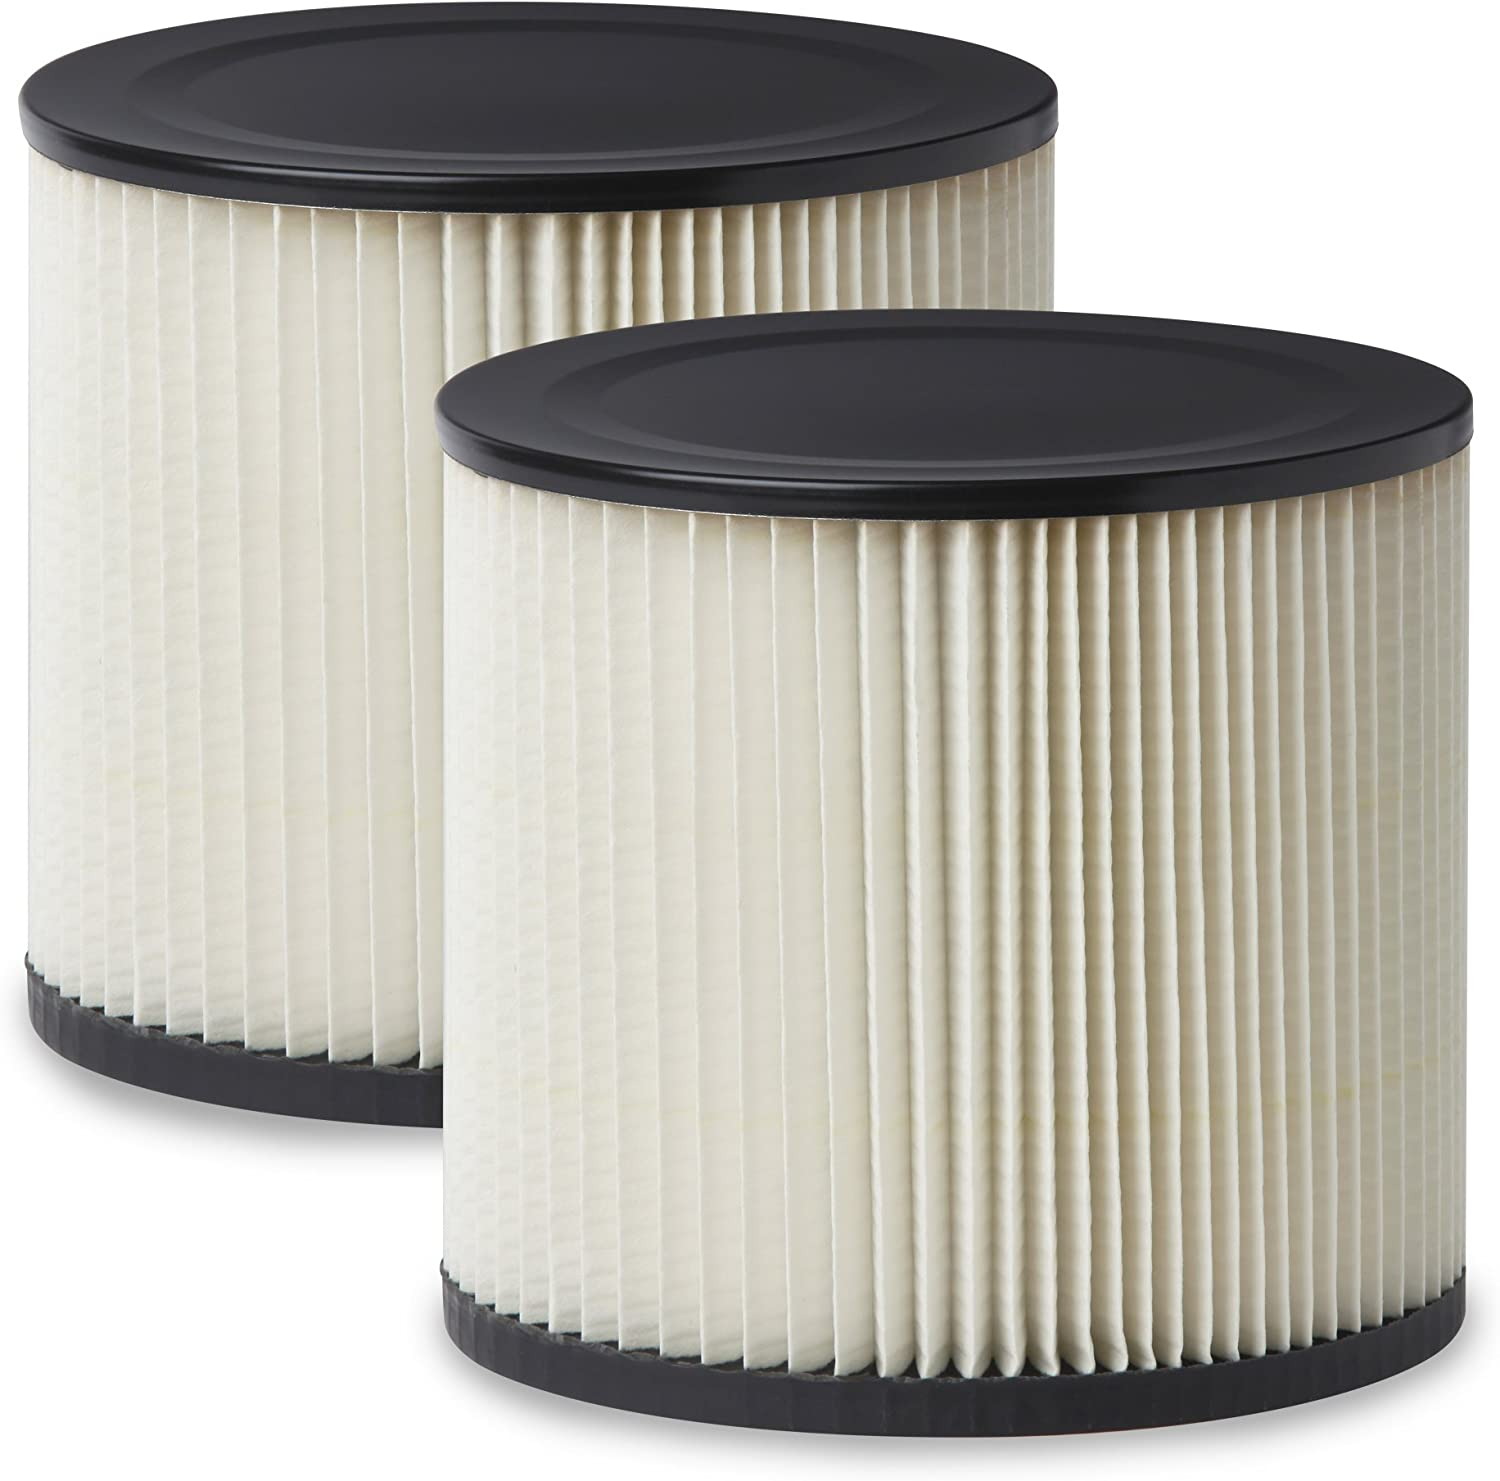 Multi-Fit Wet Dry Vac Filters VF2007TP Standard Wet Dry Vacuum Filters (2 Pack - Shop Vacuum Cleaner Filters) Fits Most 5 gallon & Larger Shop-Vac, Vacmaster & Genie Shop Vacuum Cleaners